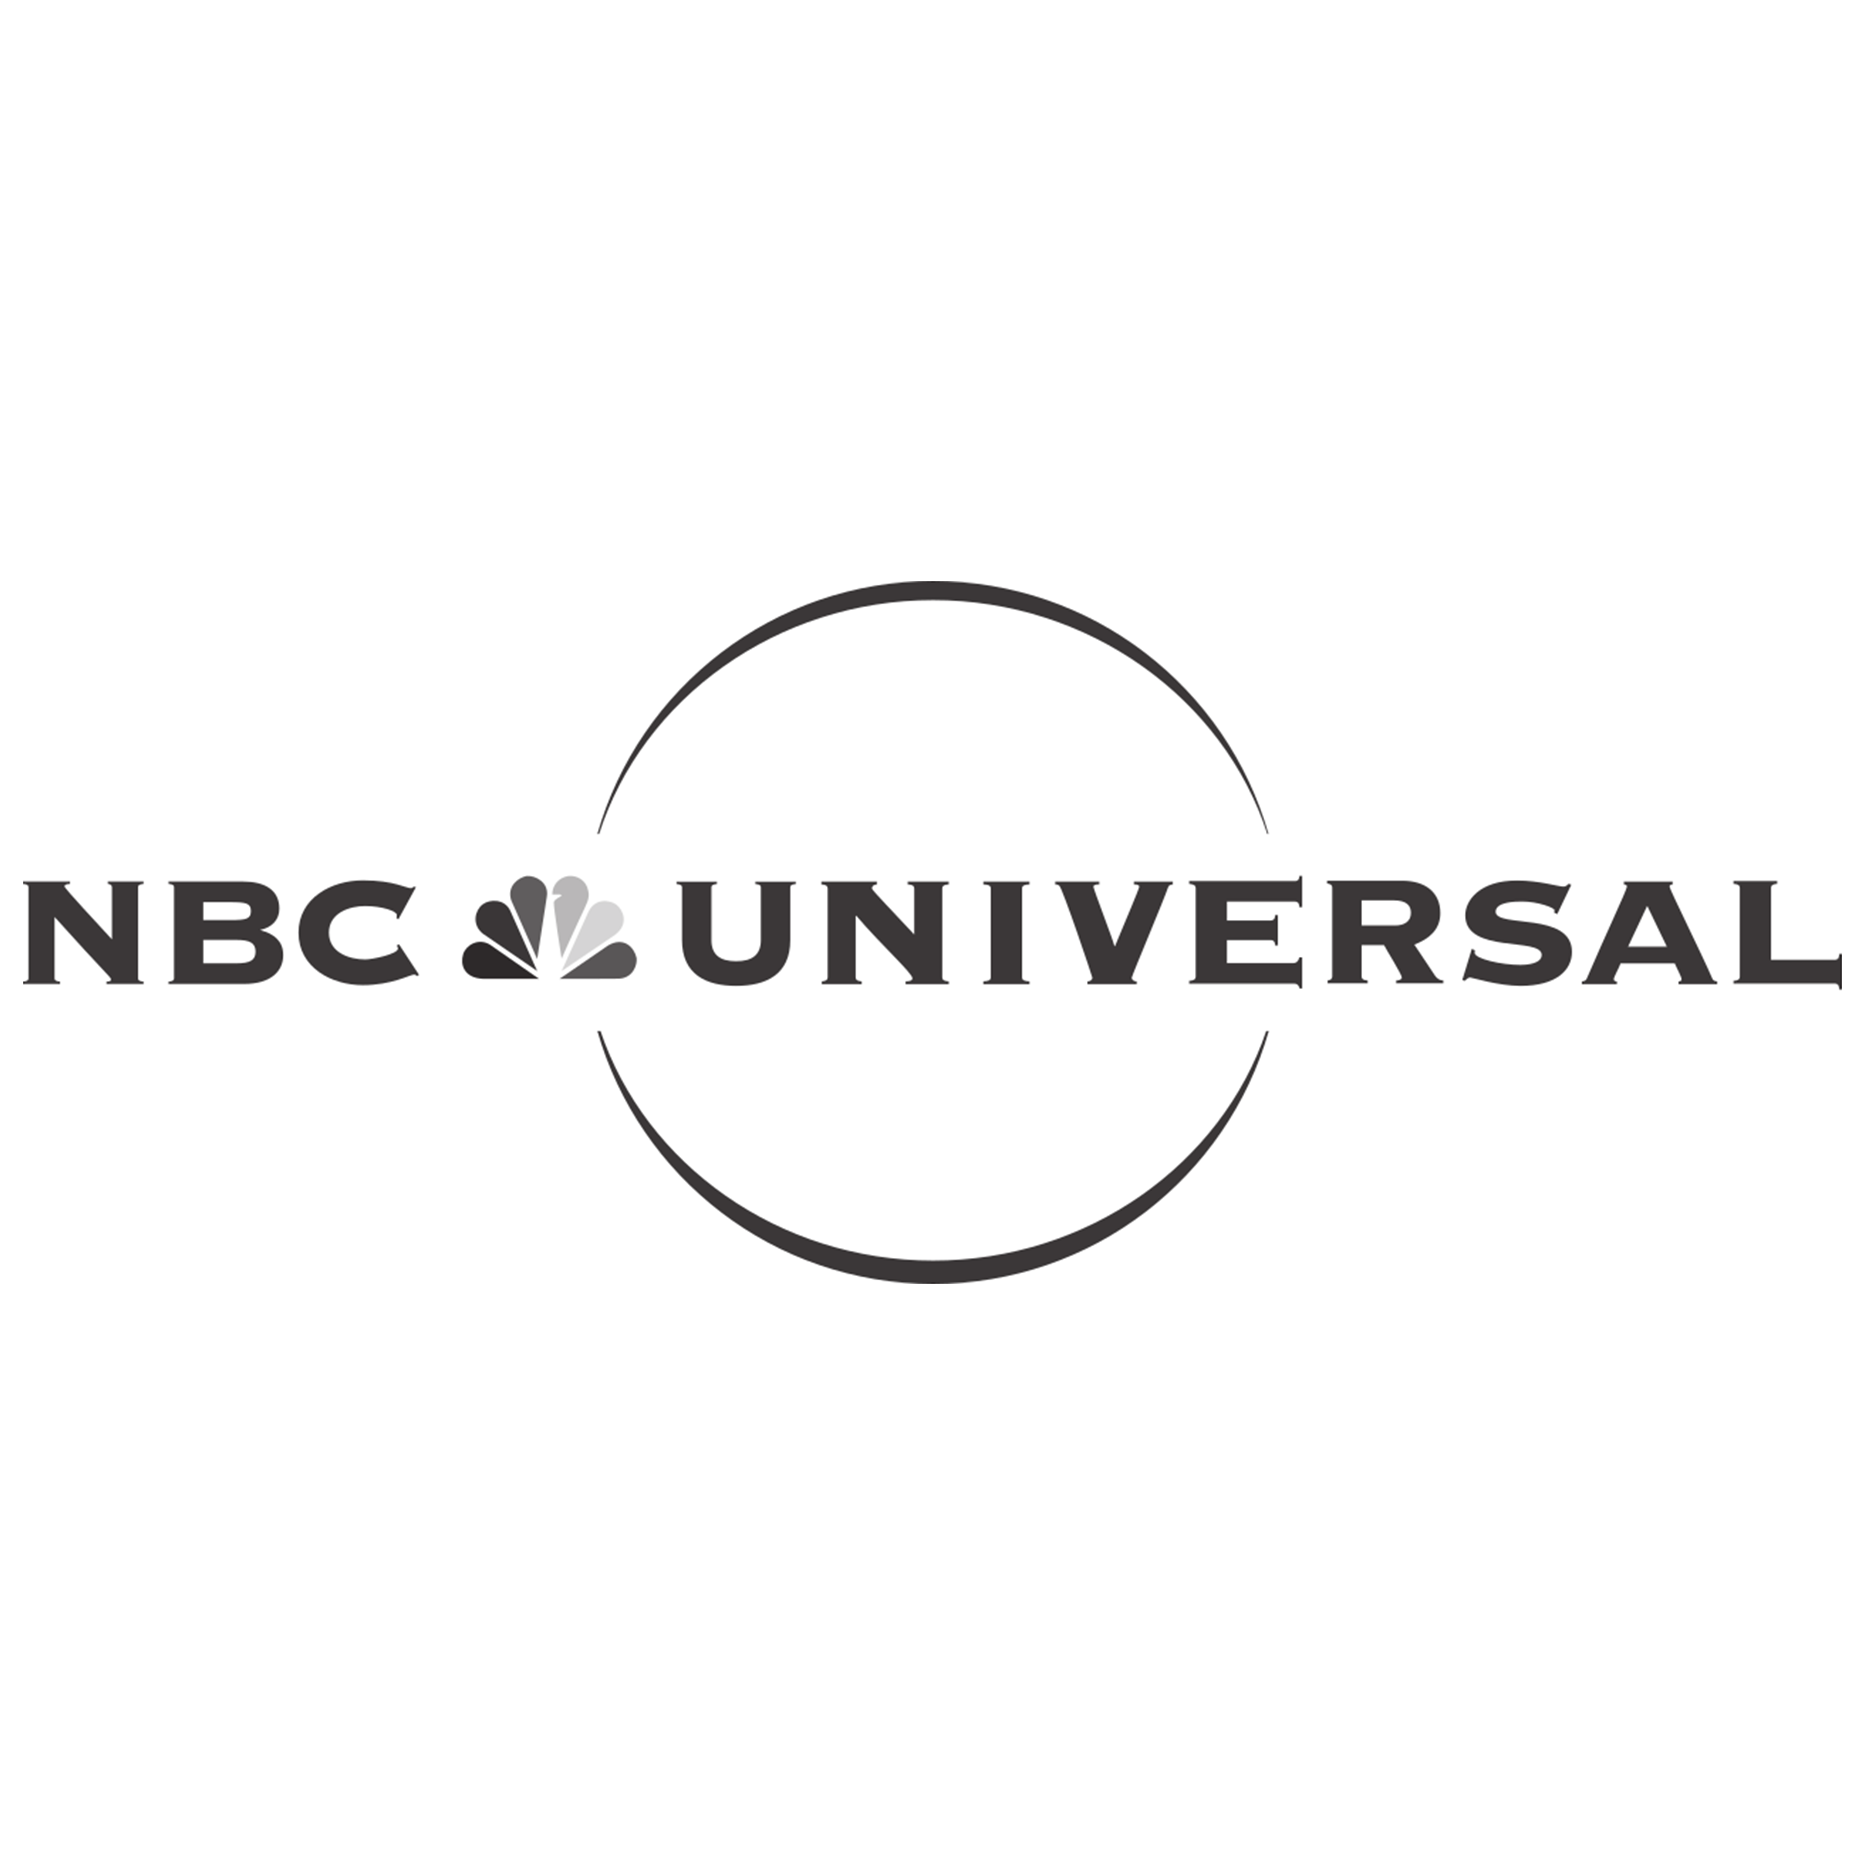 NBC Universal - gs.png